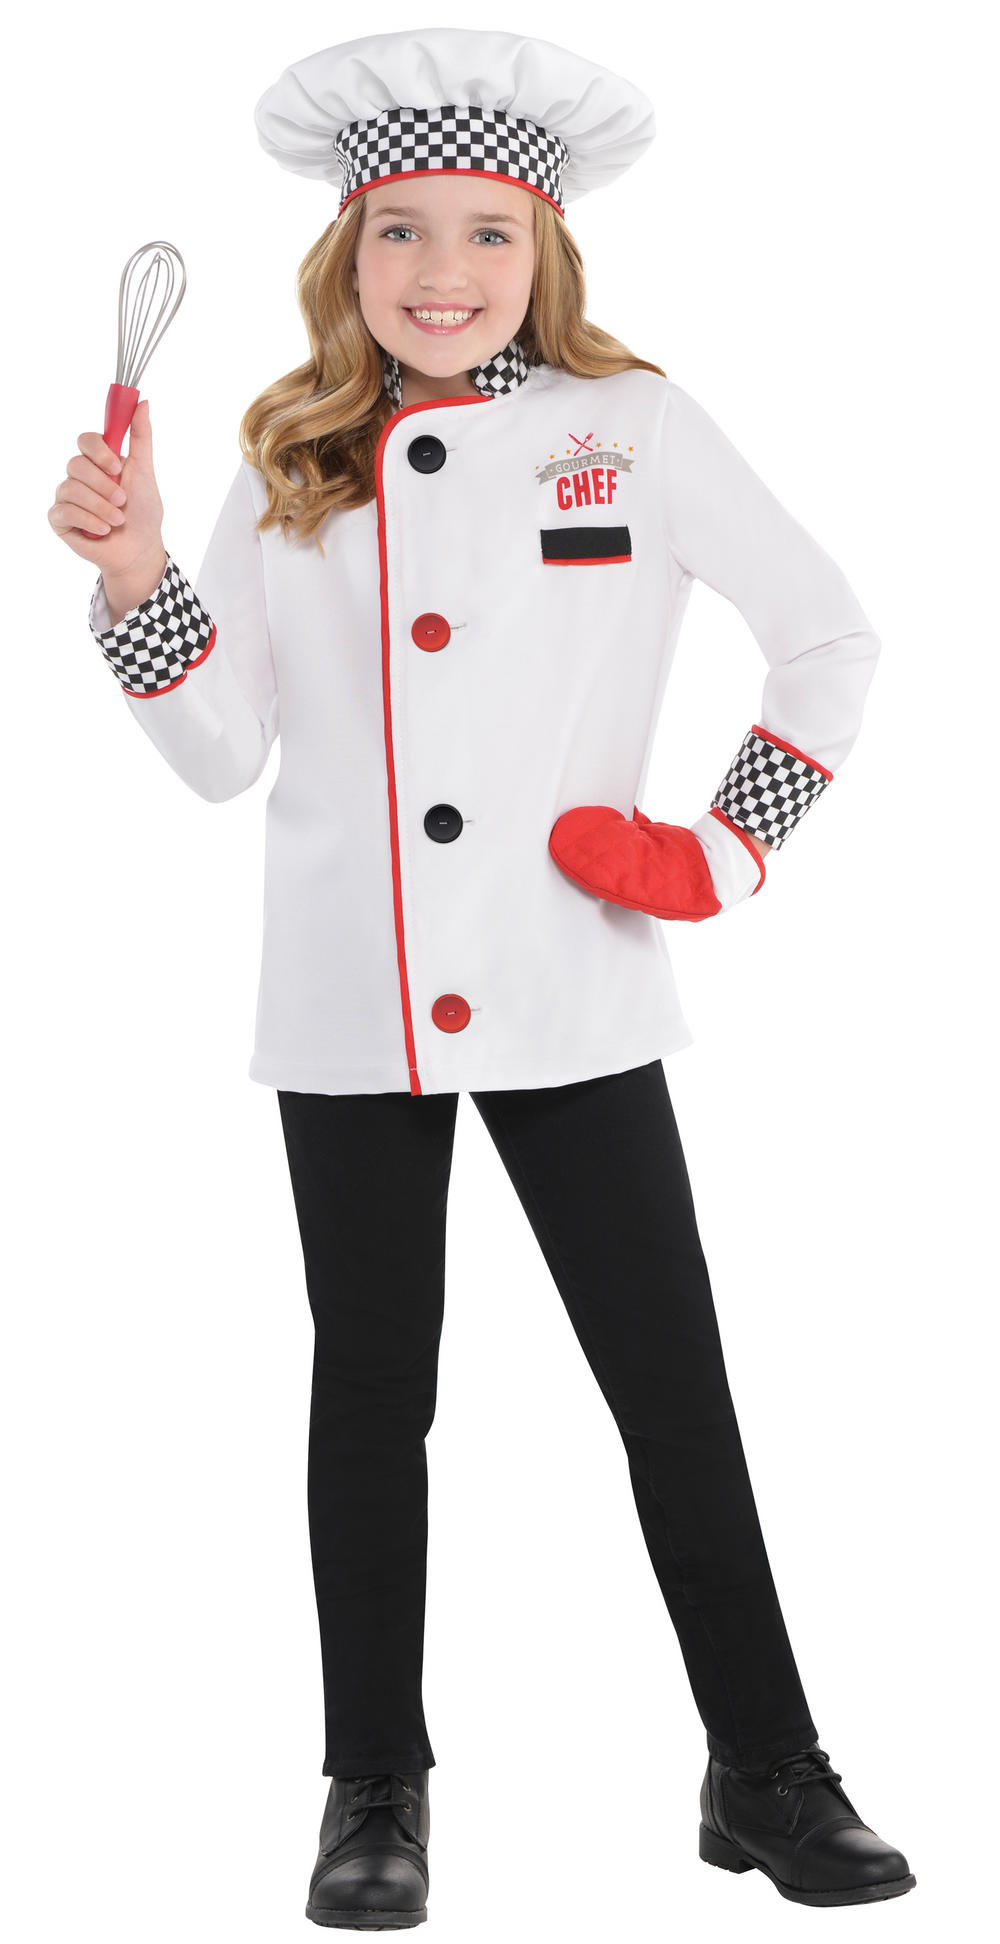 Chef Fancy Dress, Wholesale Various High Quality Chef Fancy Dress Products from Global Chef Fancy Dress Suppliers and Chef Fancy Dress Factory,Importer,Exporter at nichapie.ml